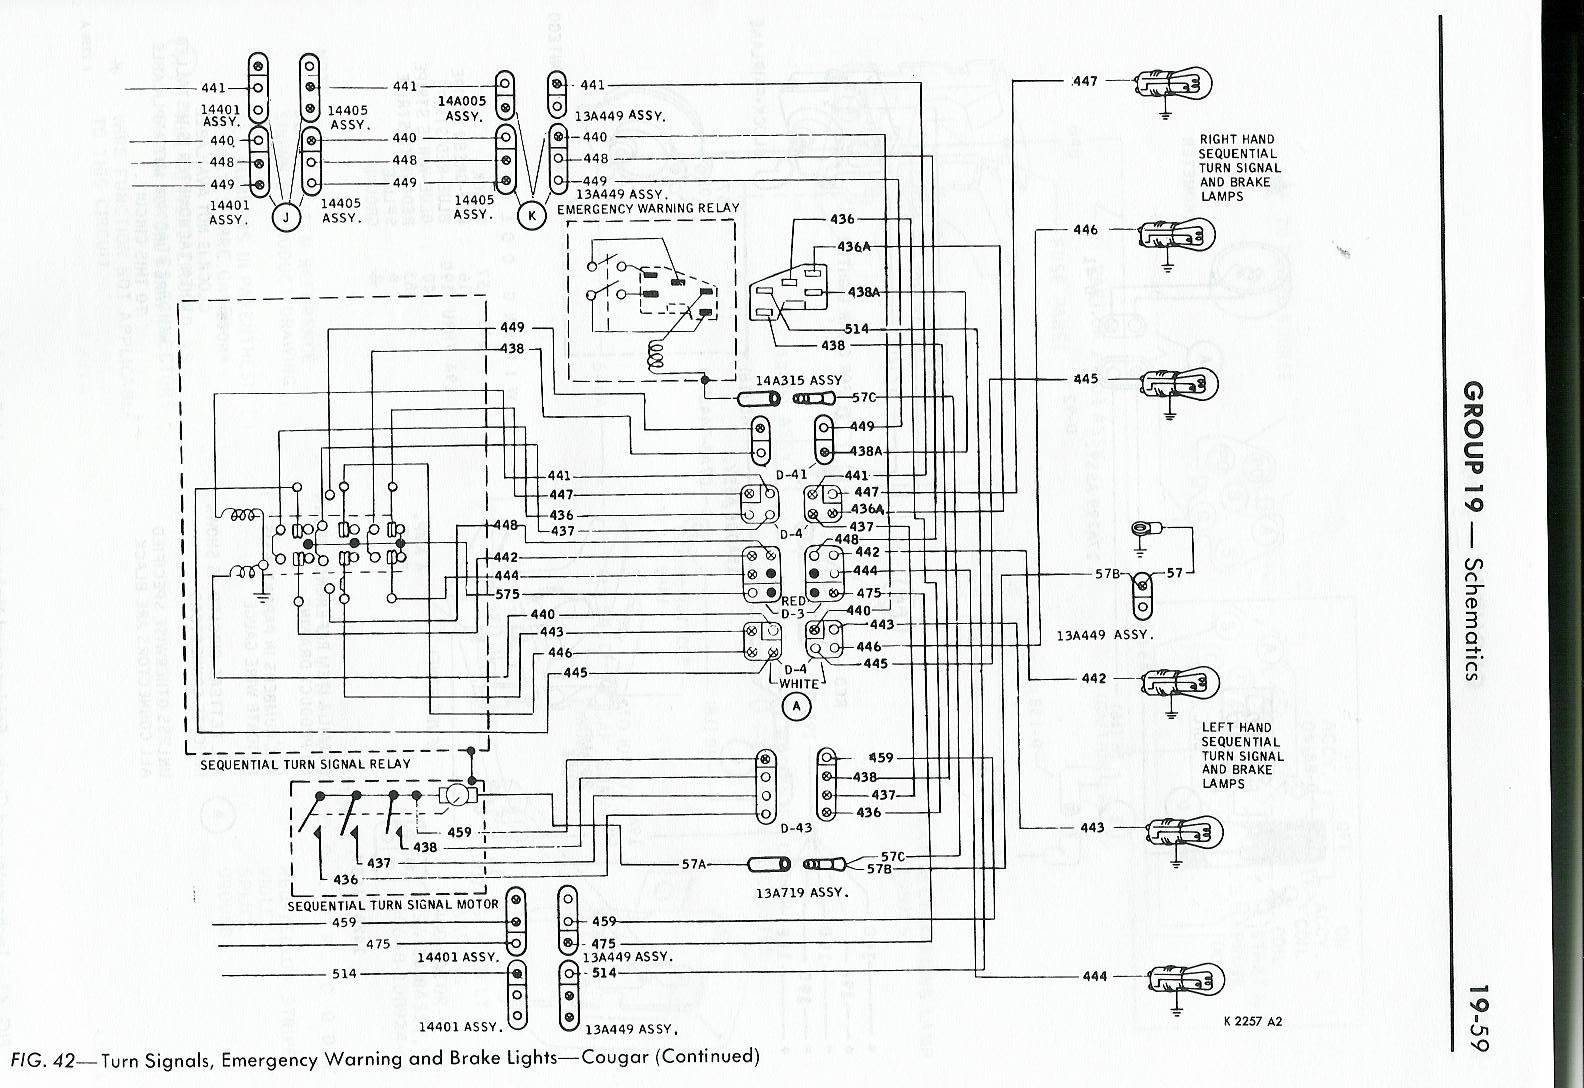 1999 mercury cougar wiring diagram hks turbo timer type 0 68 fuse box all data 1968 label